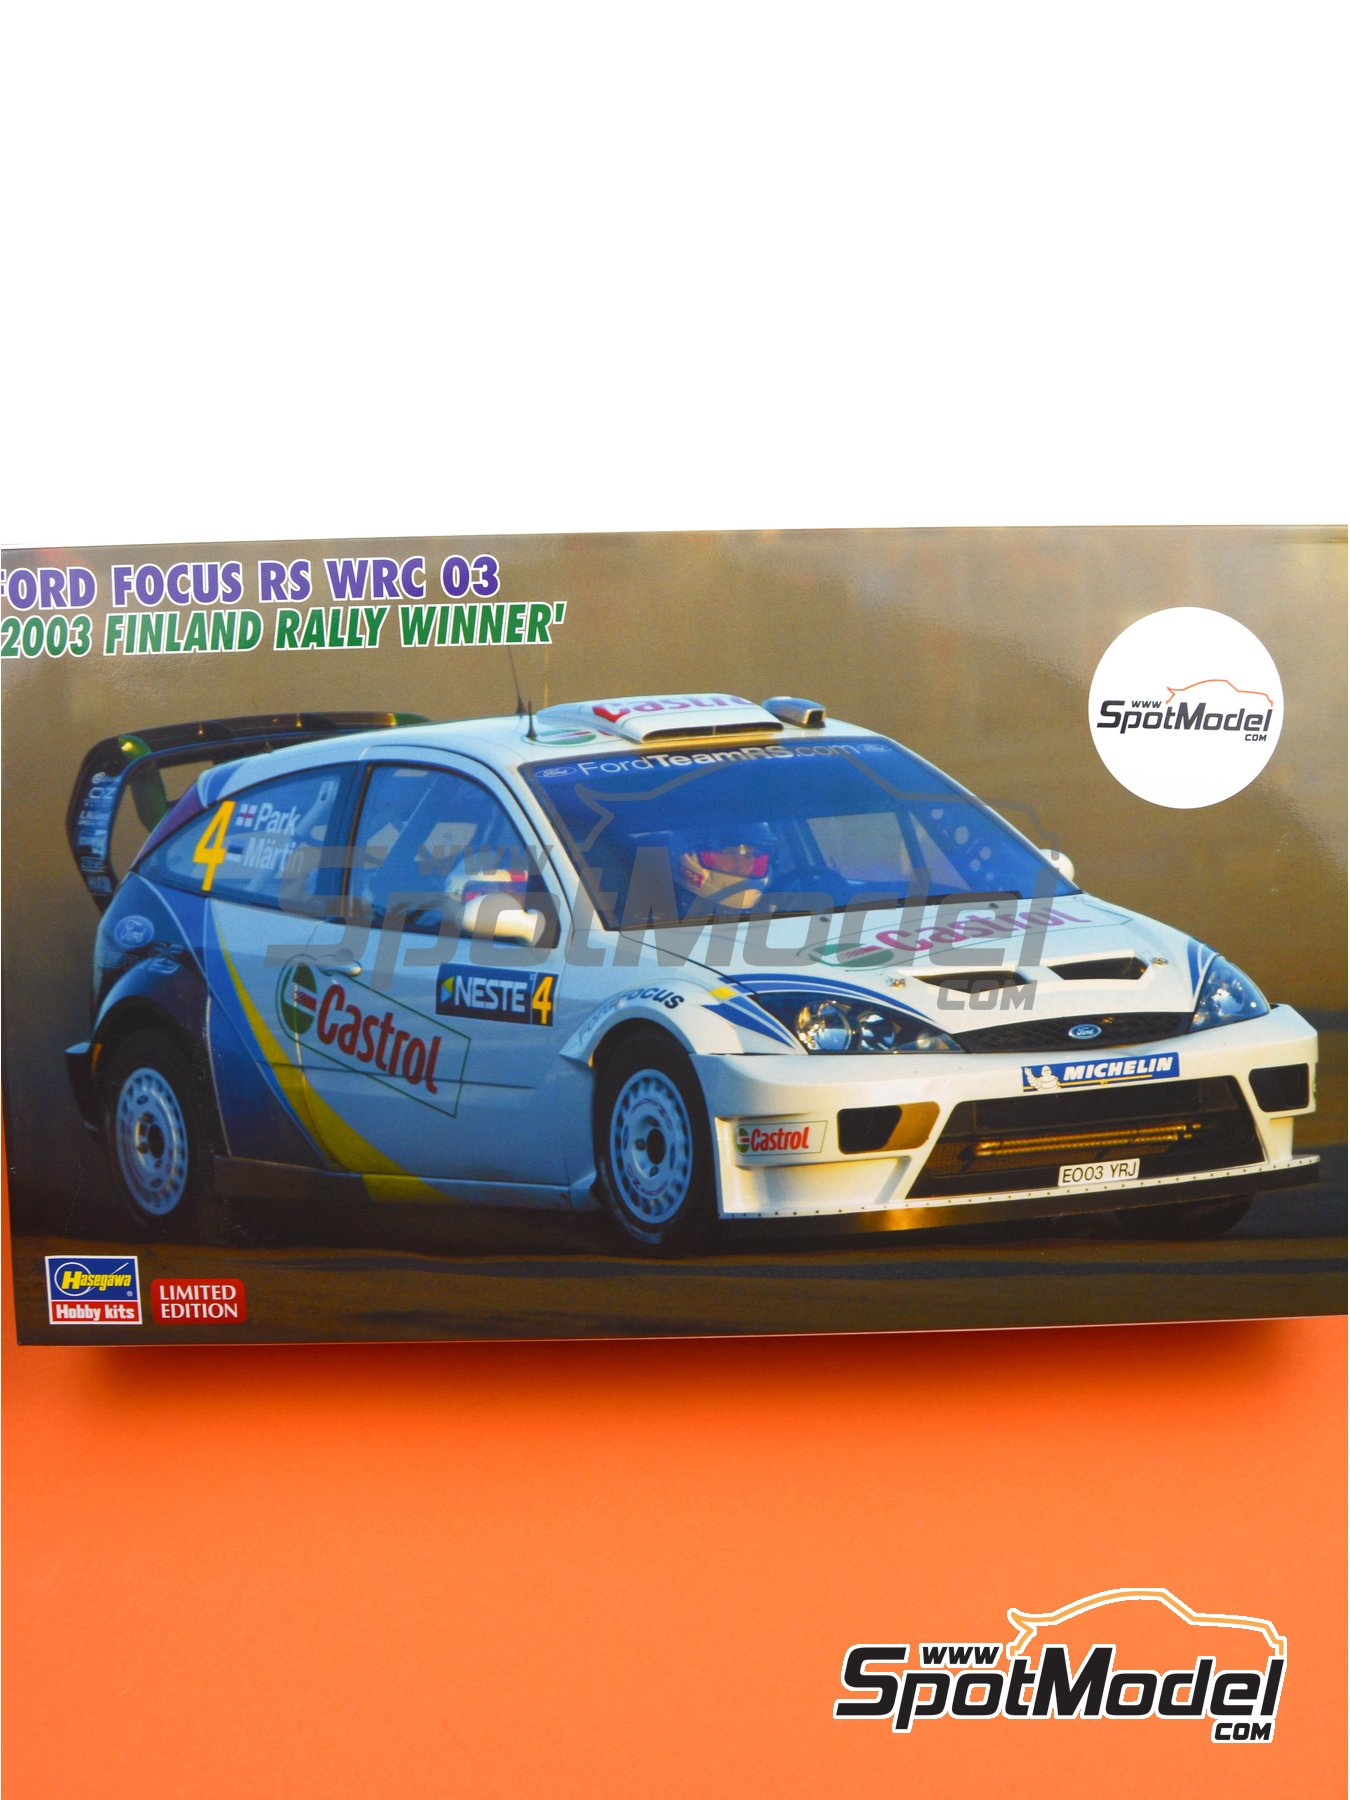 Ford Focus RS WRC 03 Castrol - 1000 Lakes Finland Rally 2003 | Model car kit in 1/24 scale manufactured by Hasegawa (ref. 20380, also HSG20380 and 4967834203808) image